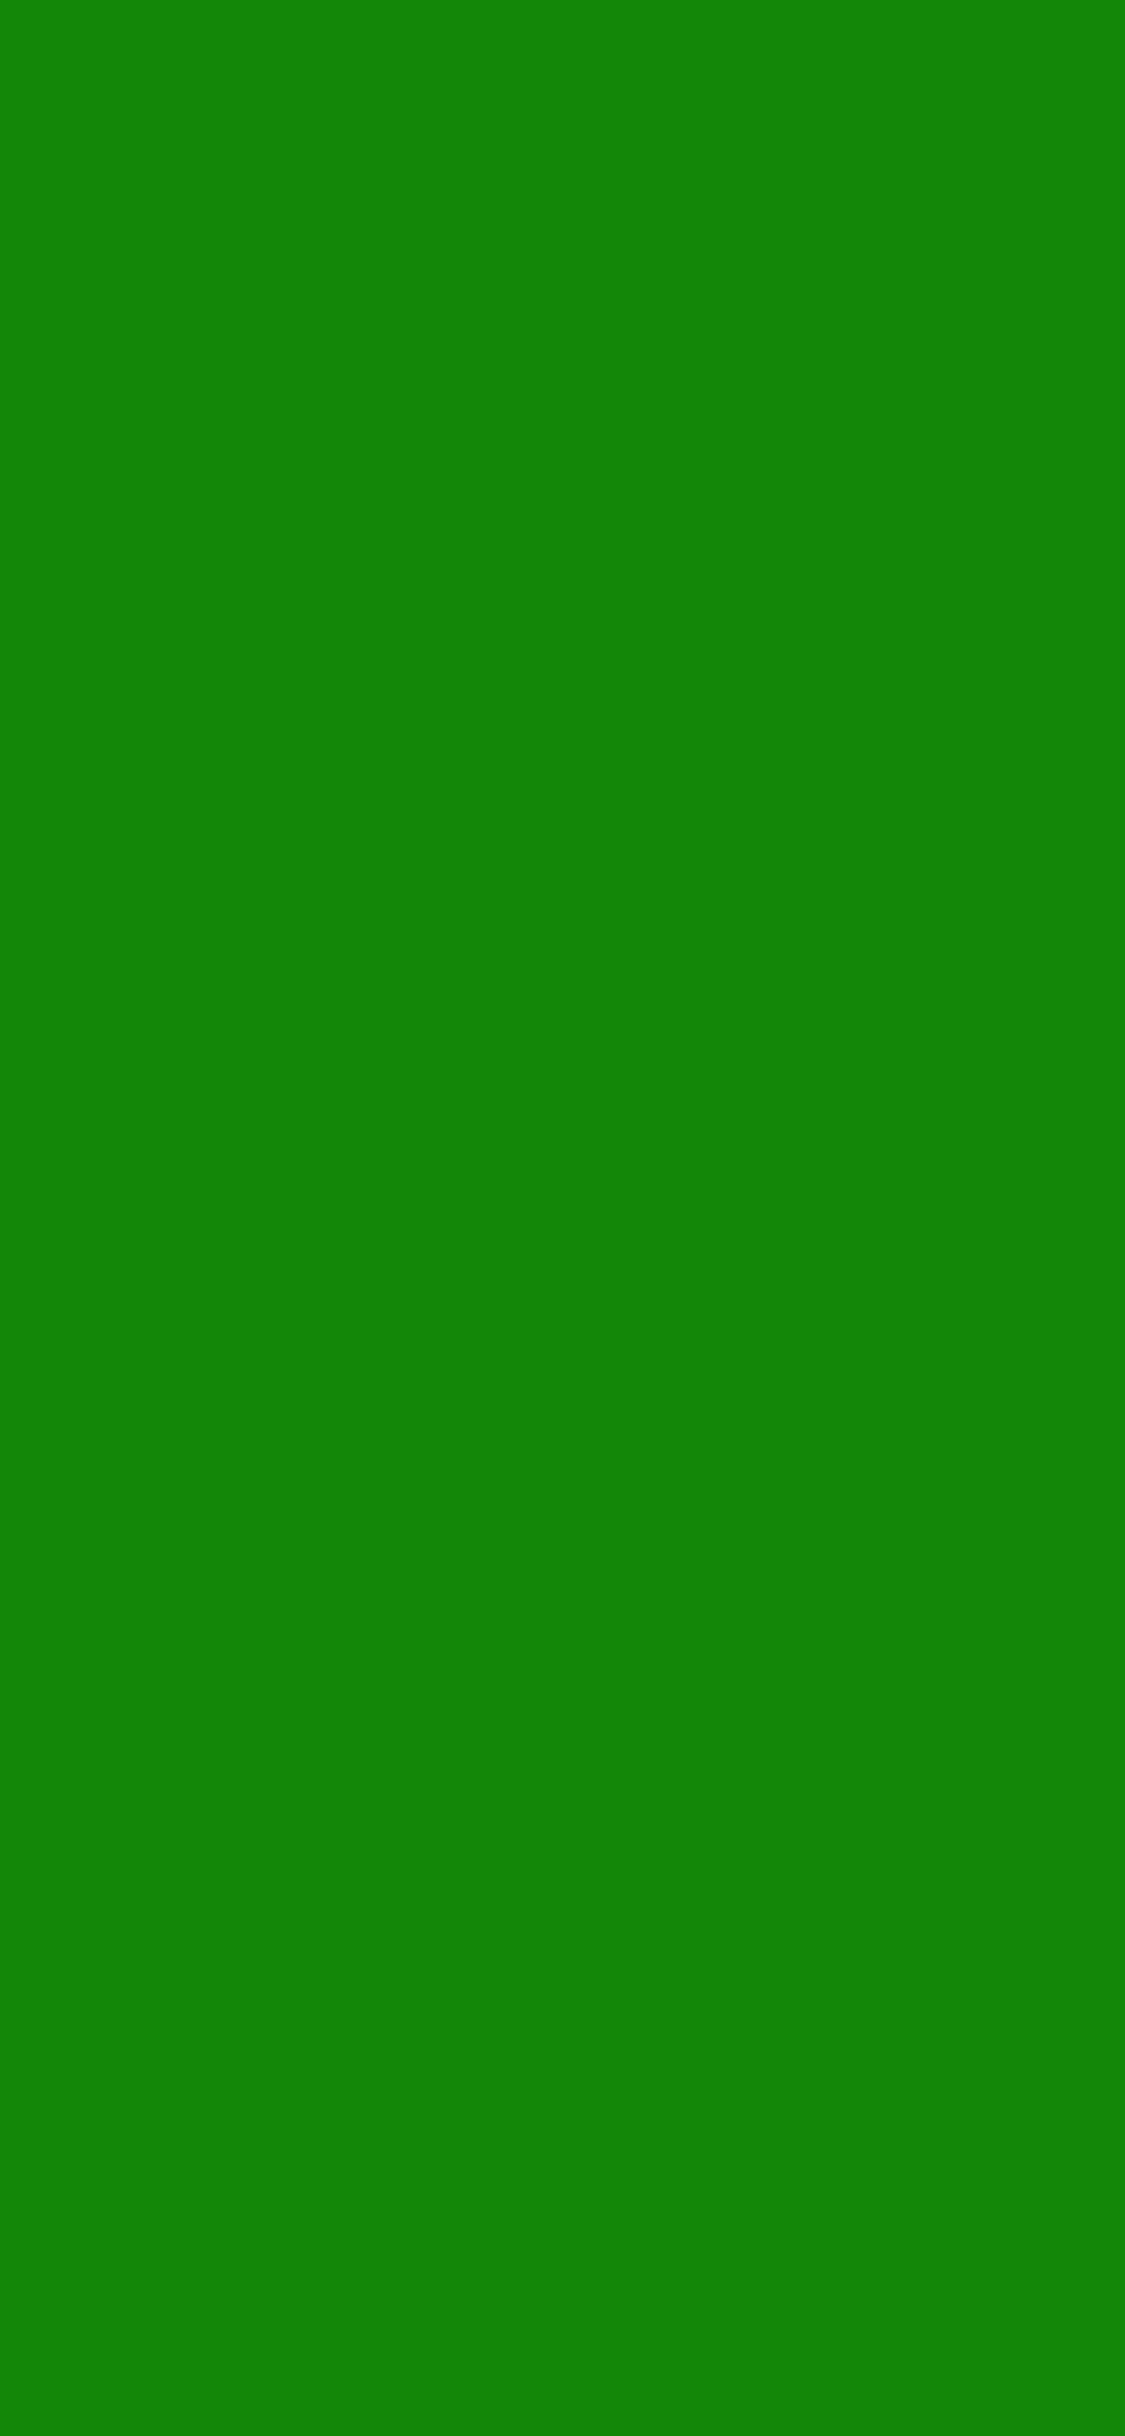 1125x2436 India Green Solid Color Background